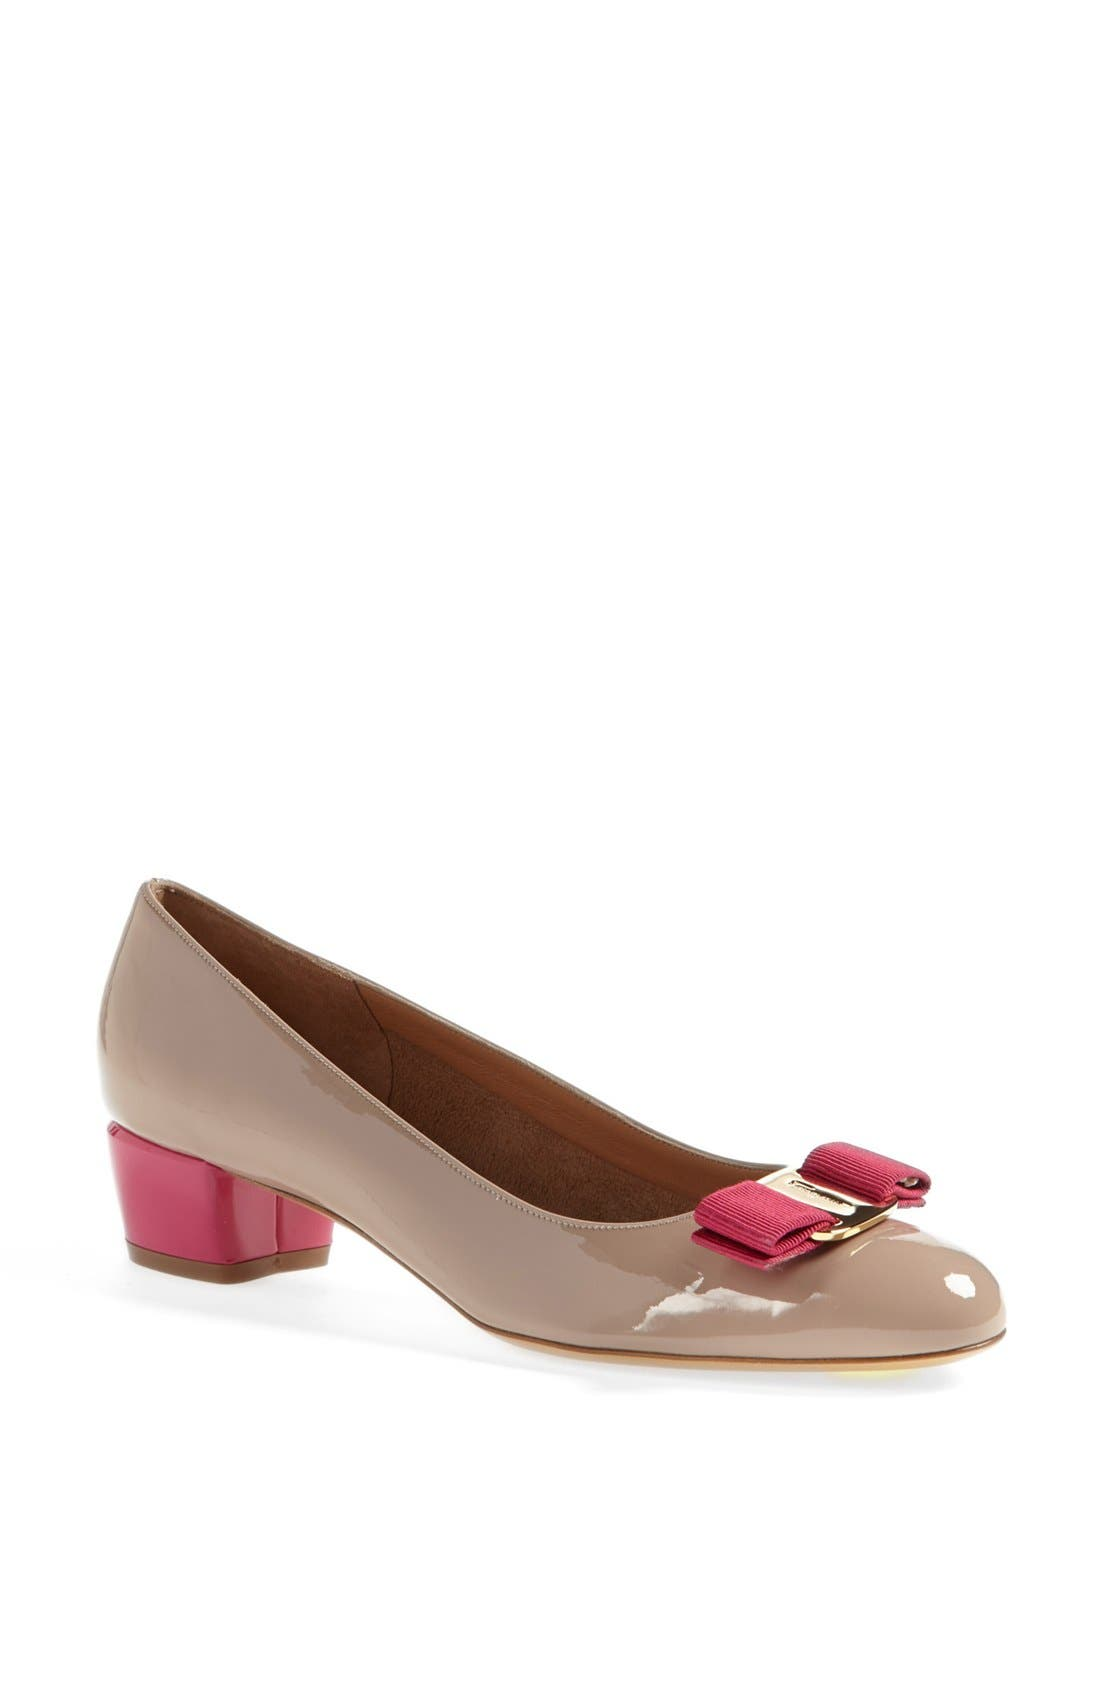 Alternate Image 1 Selected - Salvatore Ferragamo 'Vara' Pump